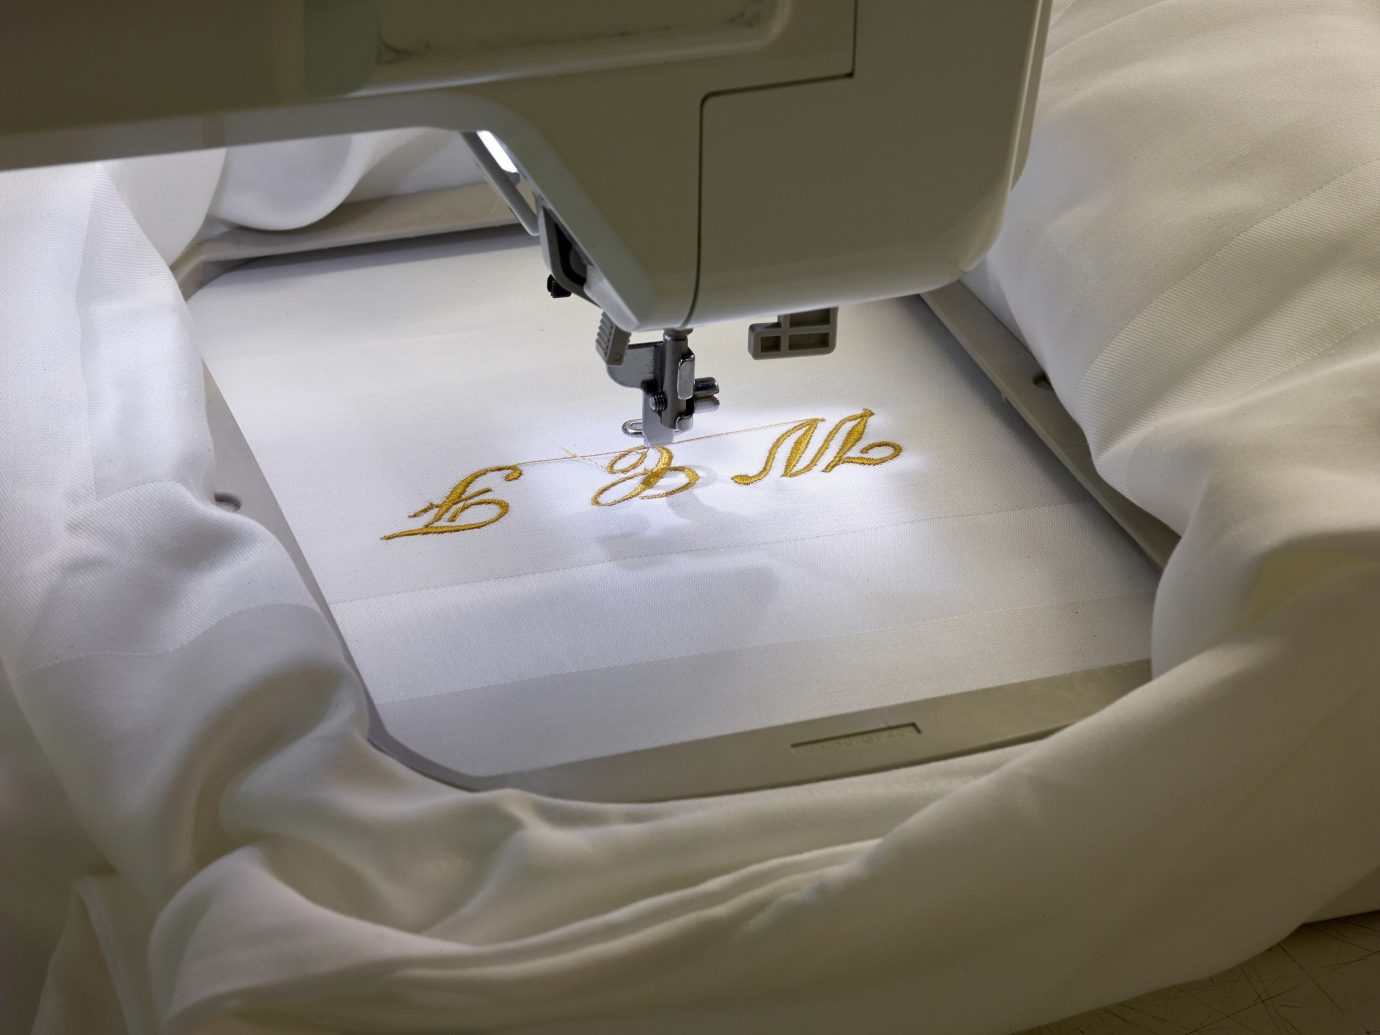 Hotels indoor bed appliance sewing art wheel sewing machine automotive exterior textile